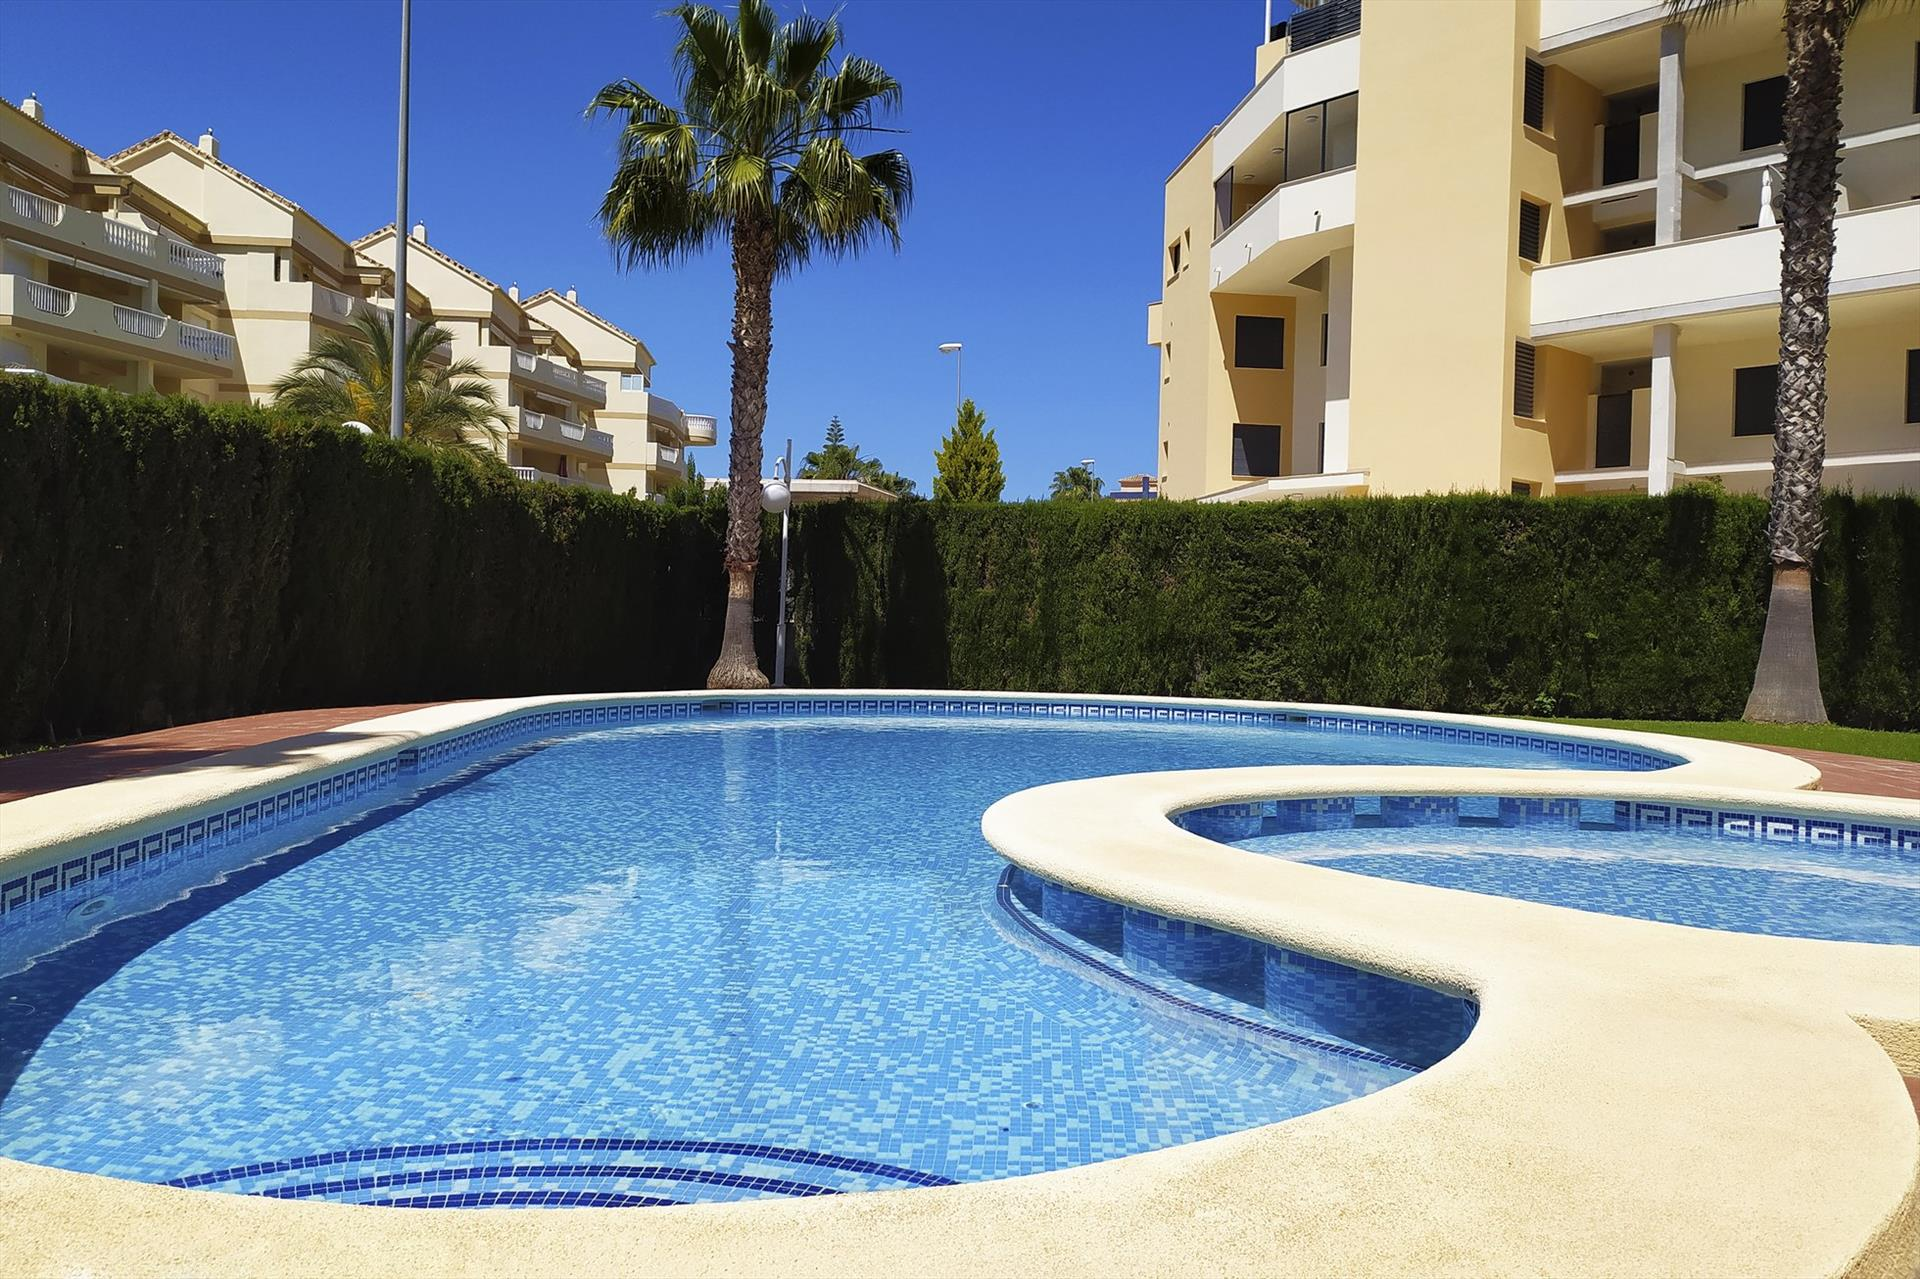 AP1104  Daly Sardina Les Marines, Classic and comfortable apartment  with communal pool in Denia, on the Costa Blanca, Spain for 3 persons.....